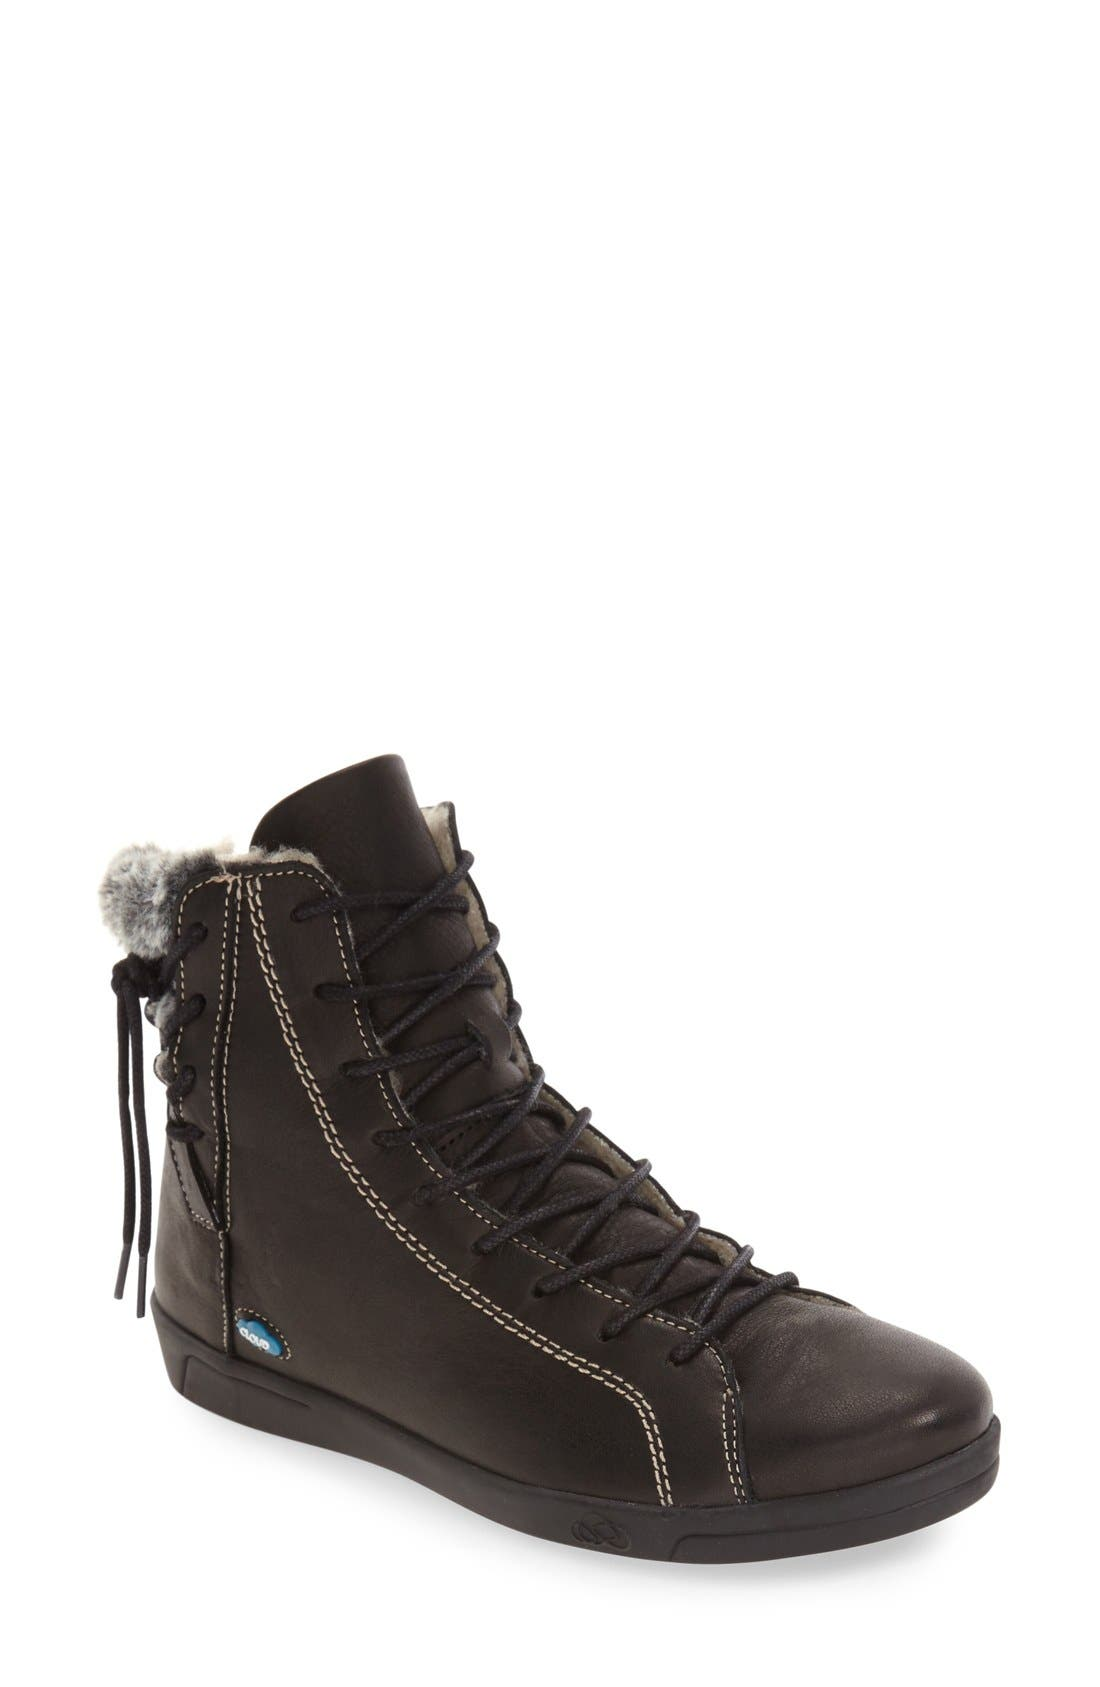 'Astrid' High Top Sneaker,                         Main,                         color, BLACK LEATHER